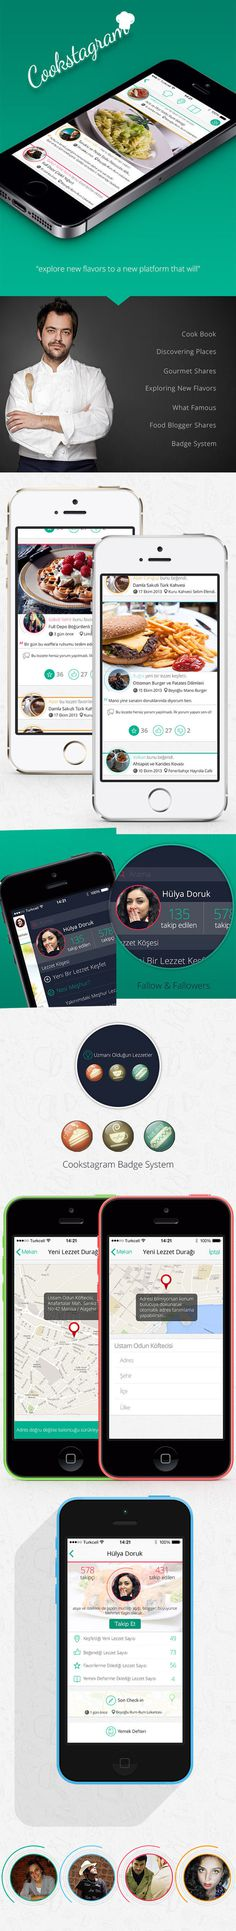 Mobile UI Design Inspiration #11